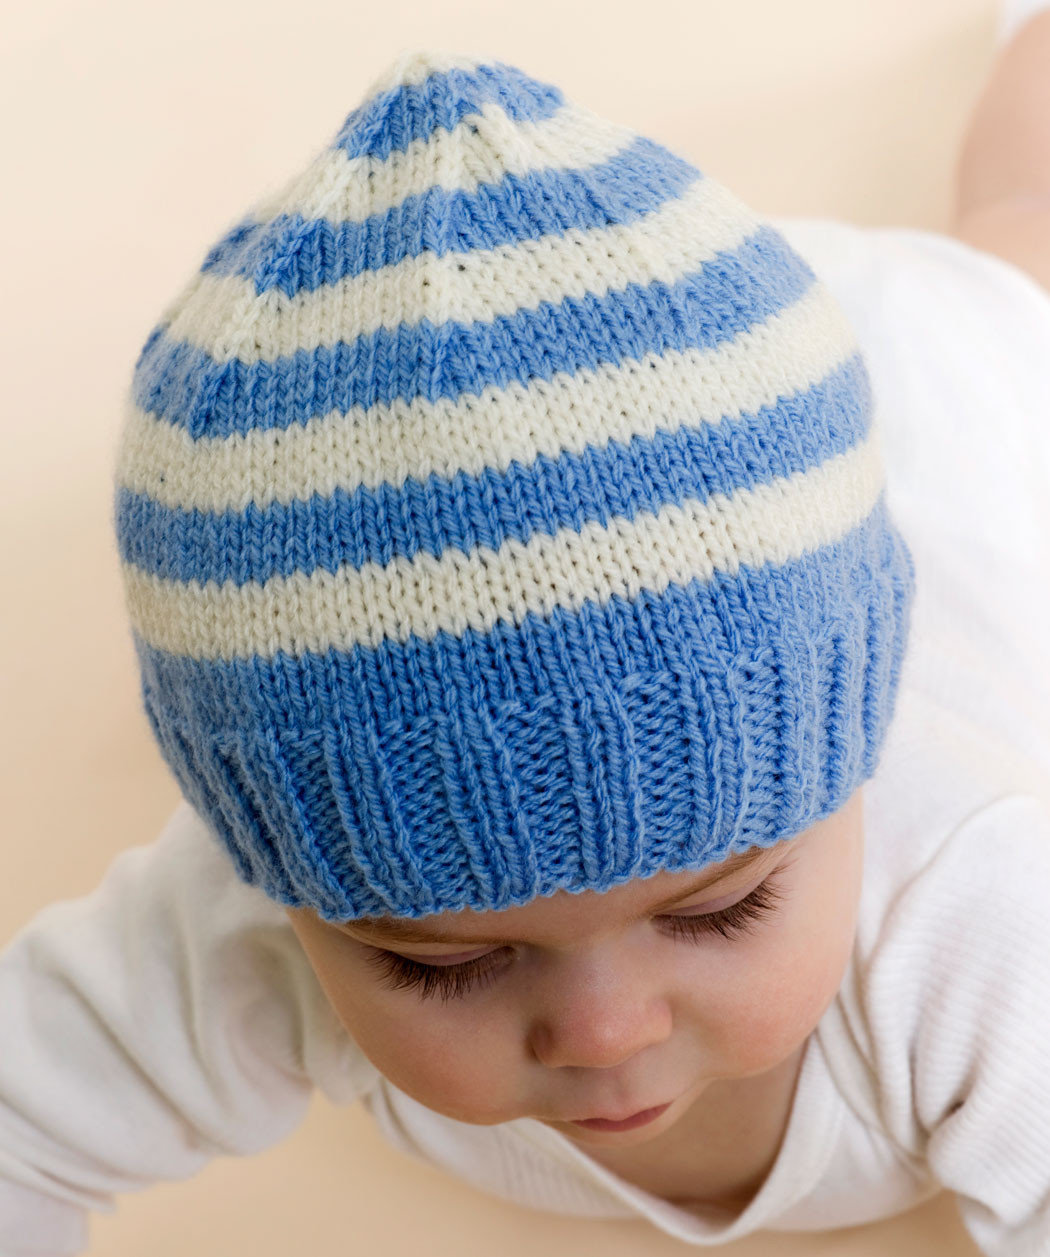 Knitted Baby Hats Best Of Knitted Baby Hats Of Awesome 41 Images Knitted Baby Hats